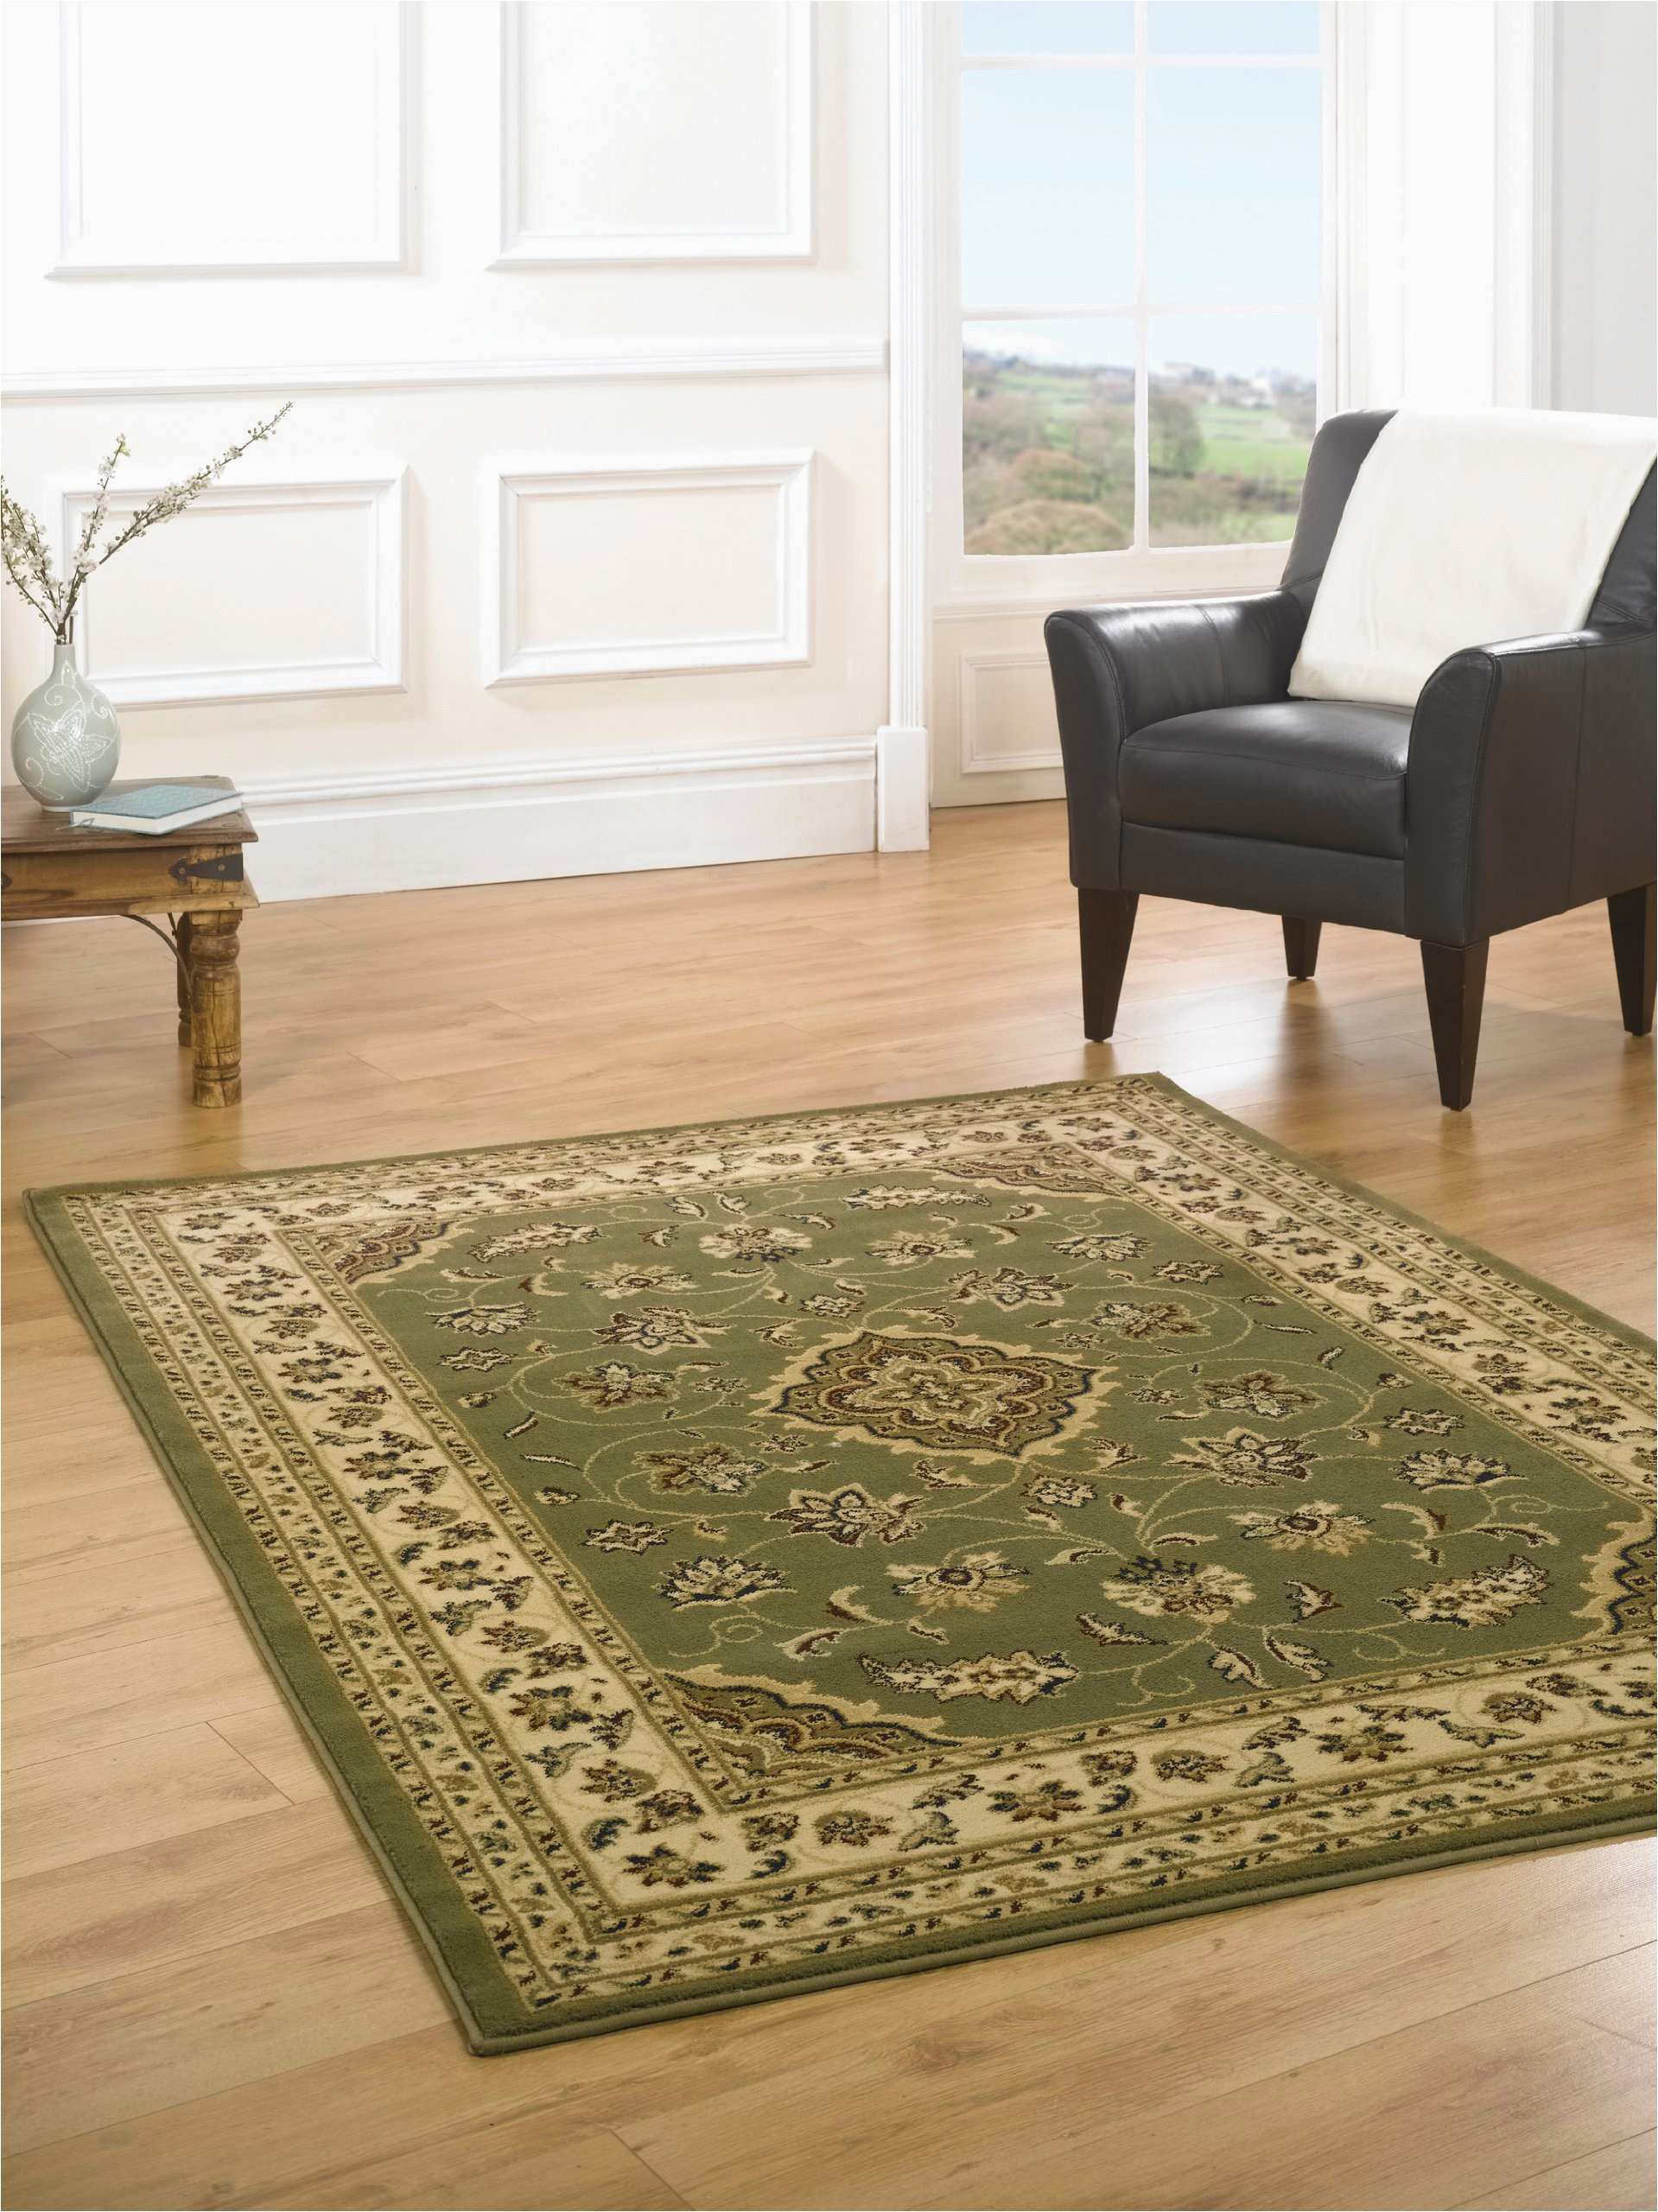 lord of rugs very large heavy oriental traditional classic green beige area rug in 160 x 230 cm 53 x 77 carpet